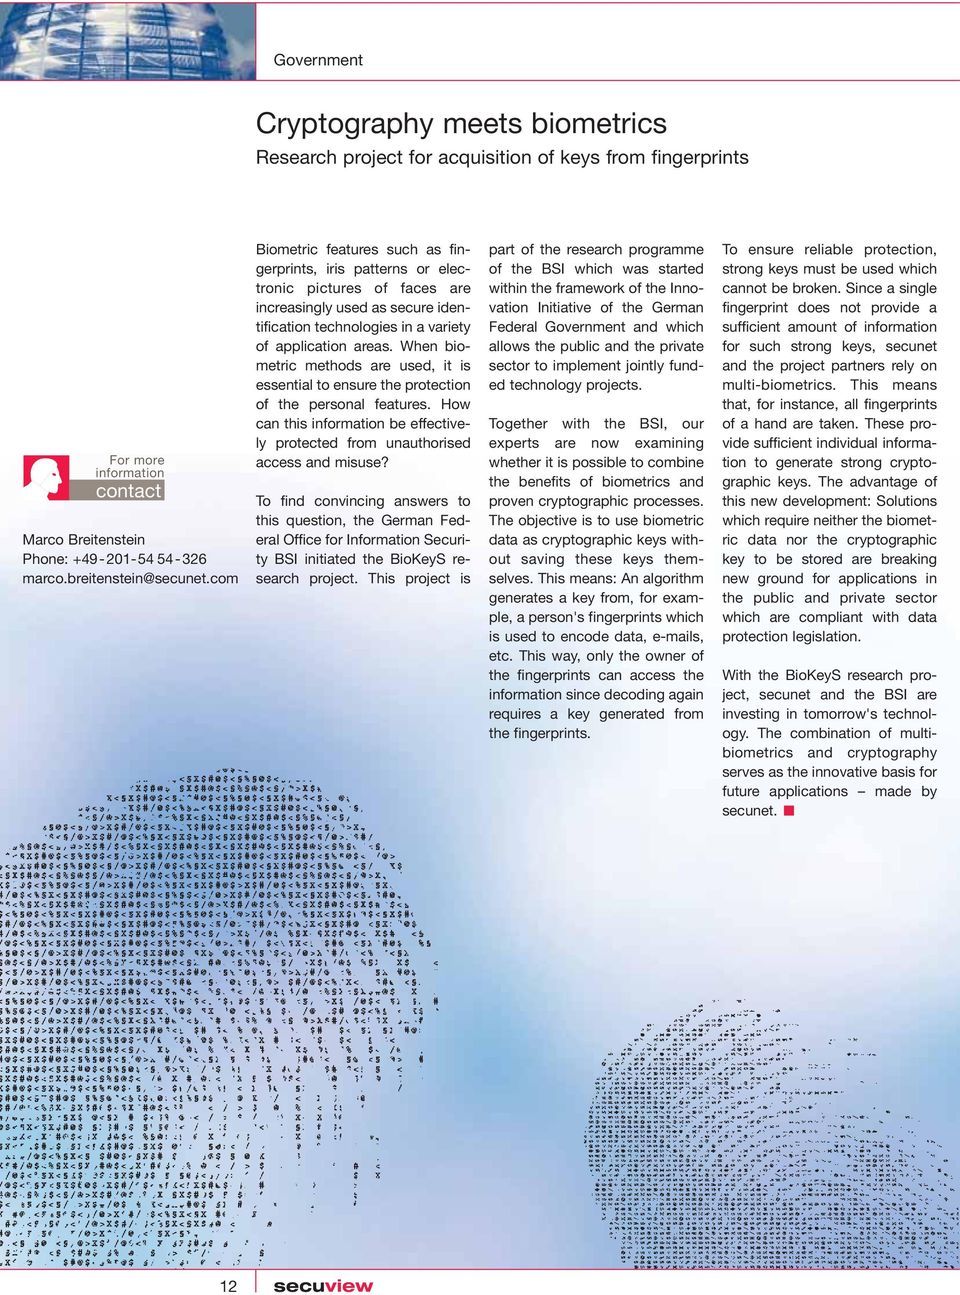 When biometric methods are used, it is essential to ensure the protection of the personal features. How can this be effectively protected from unauthorised access and misuse?